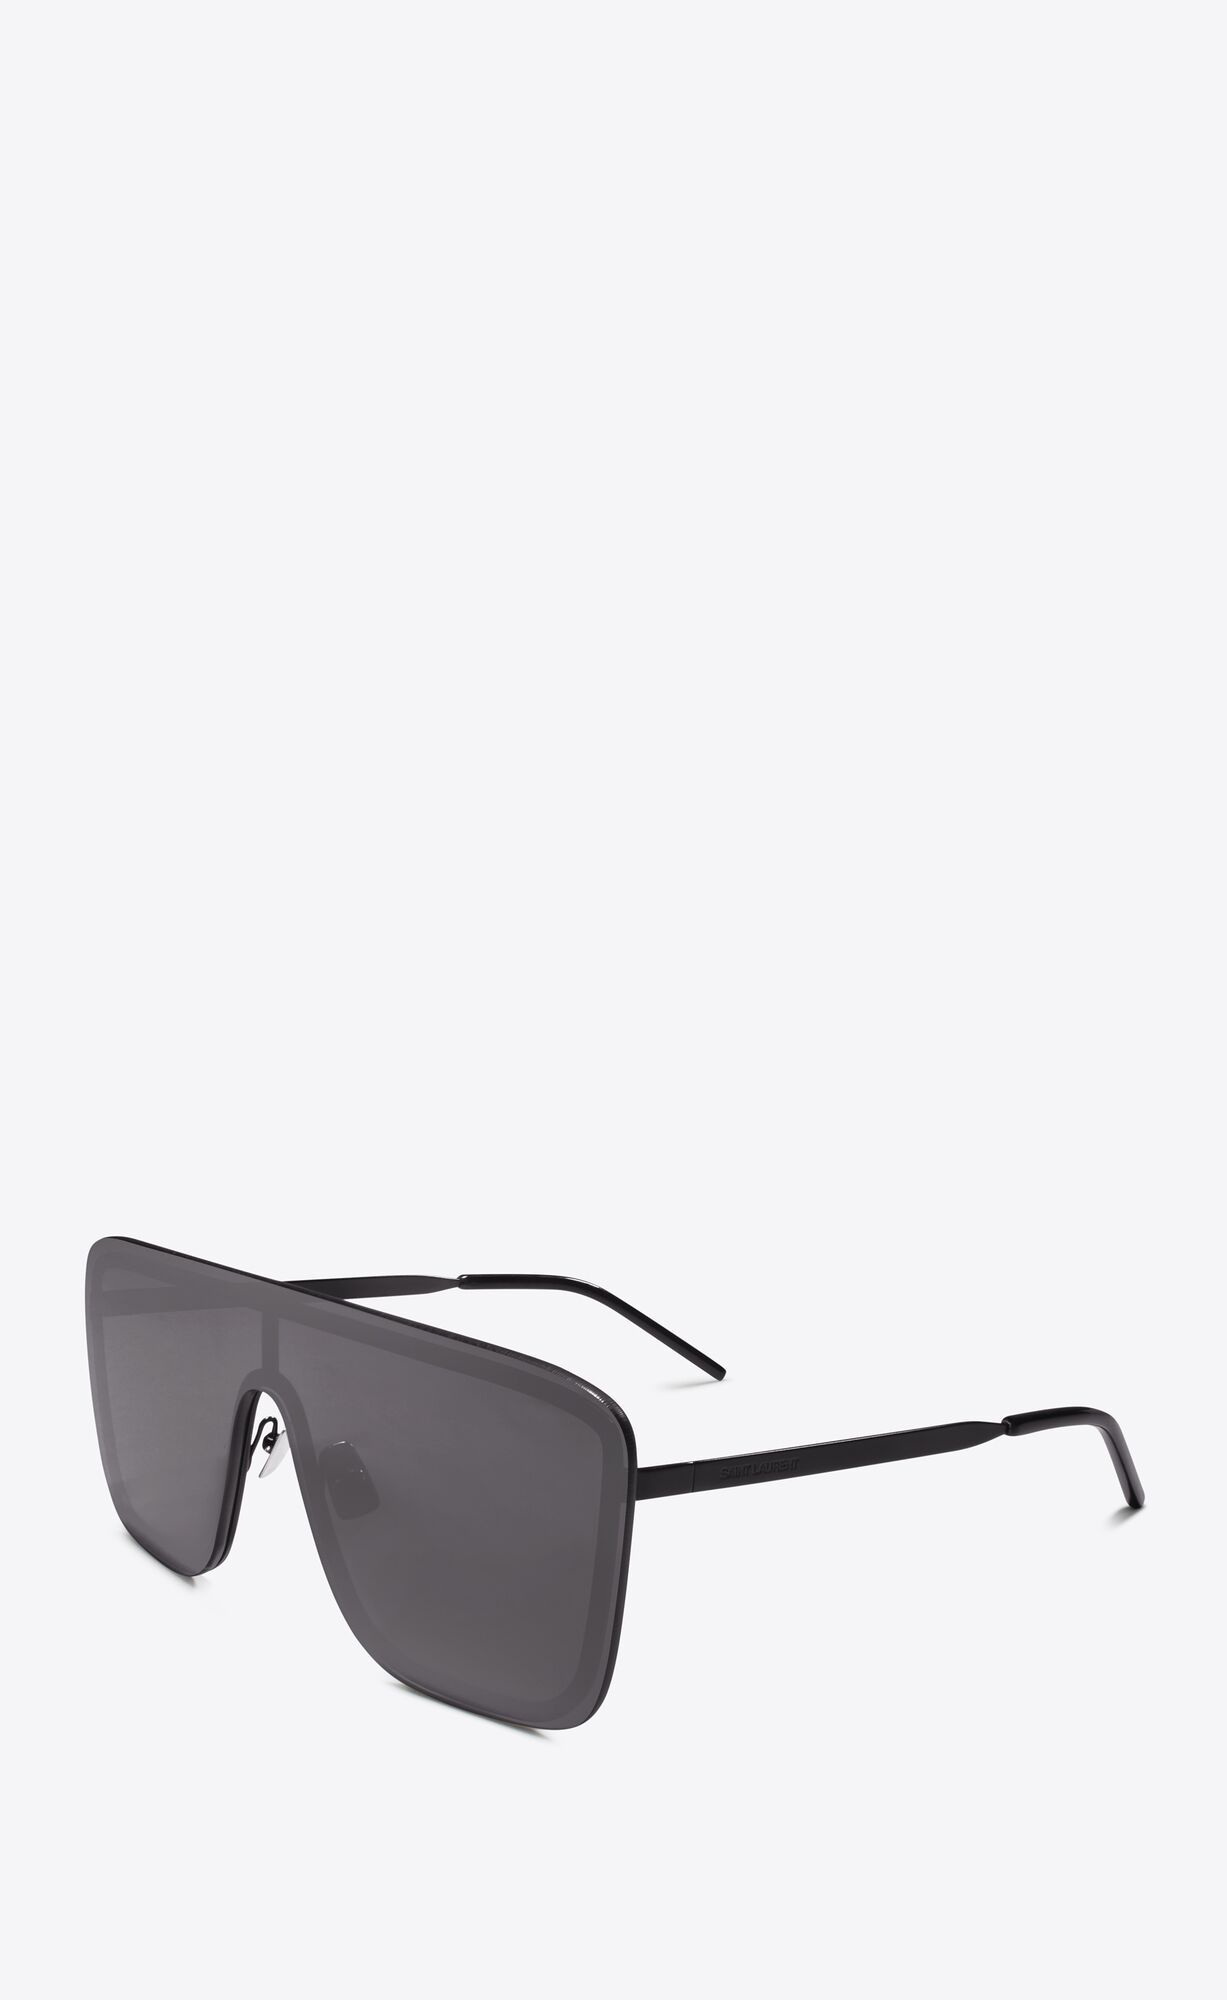 SUNSHADES EYEWEAR NZ Eyewear BLACK Saint Laurent | SL364 - Black